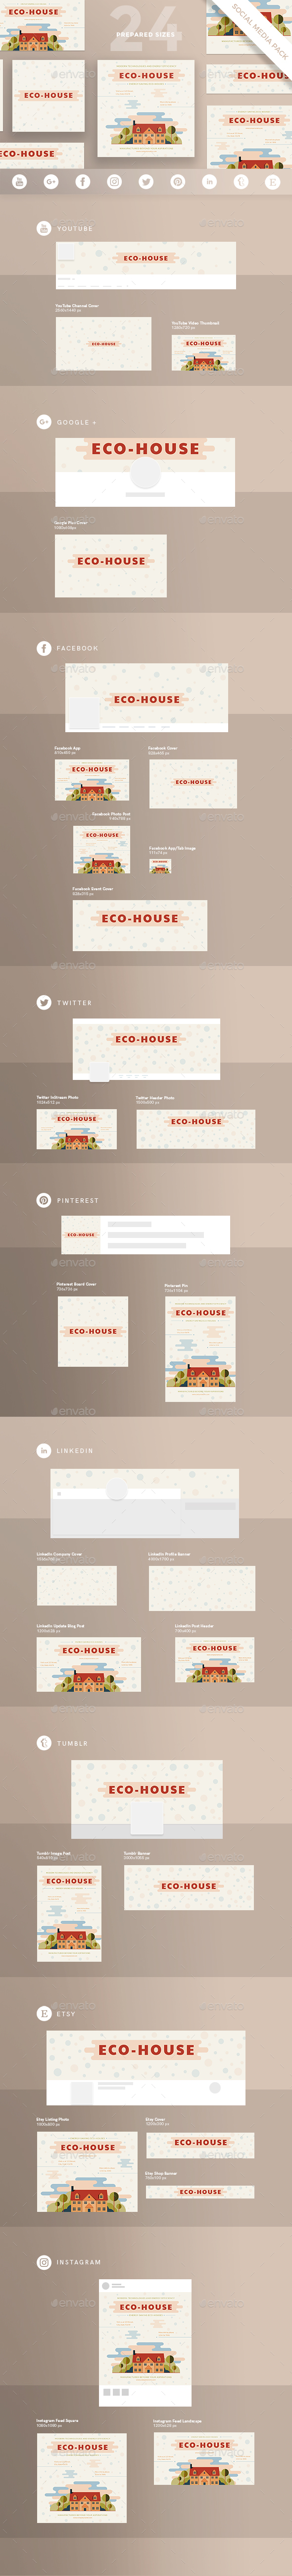 Eco House Social Media Pack - Miscellaneous Social Media